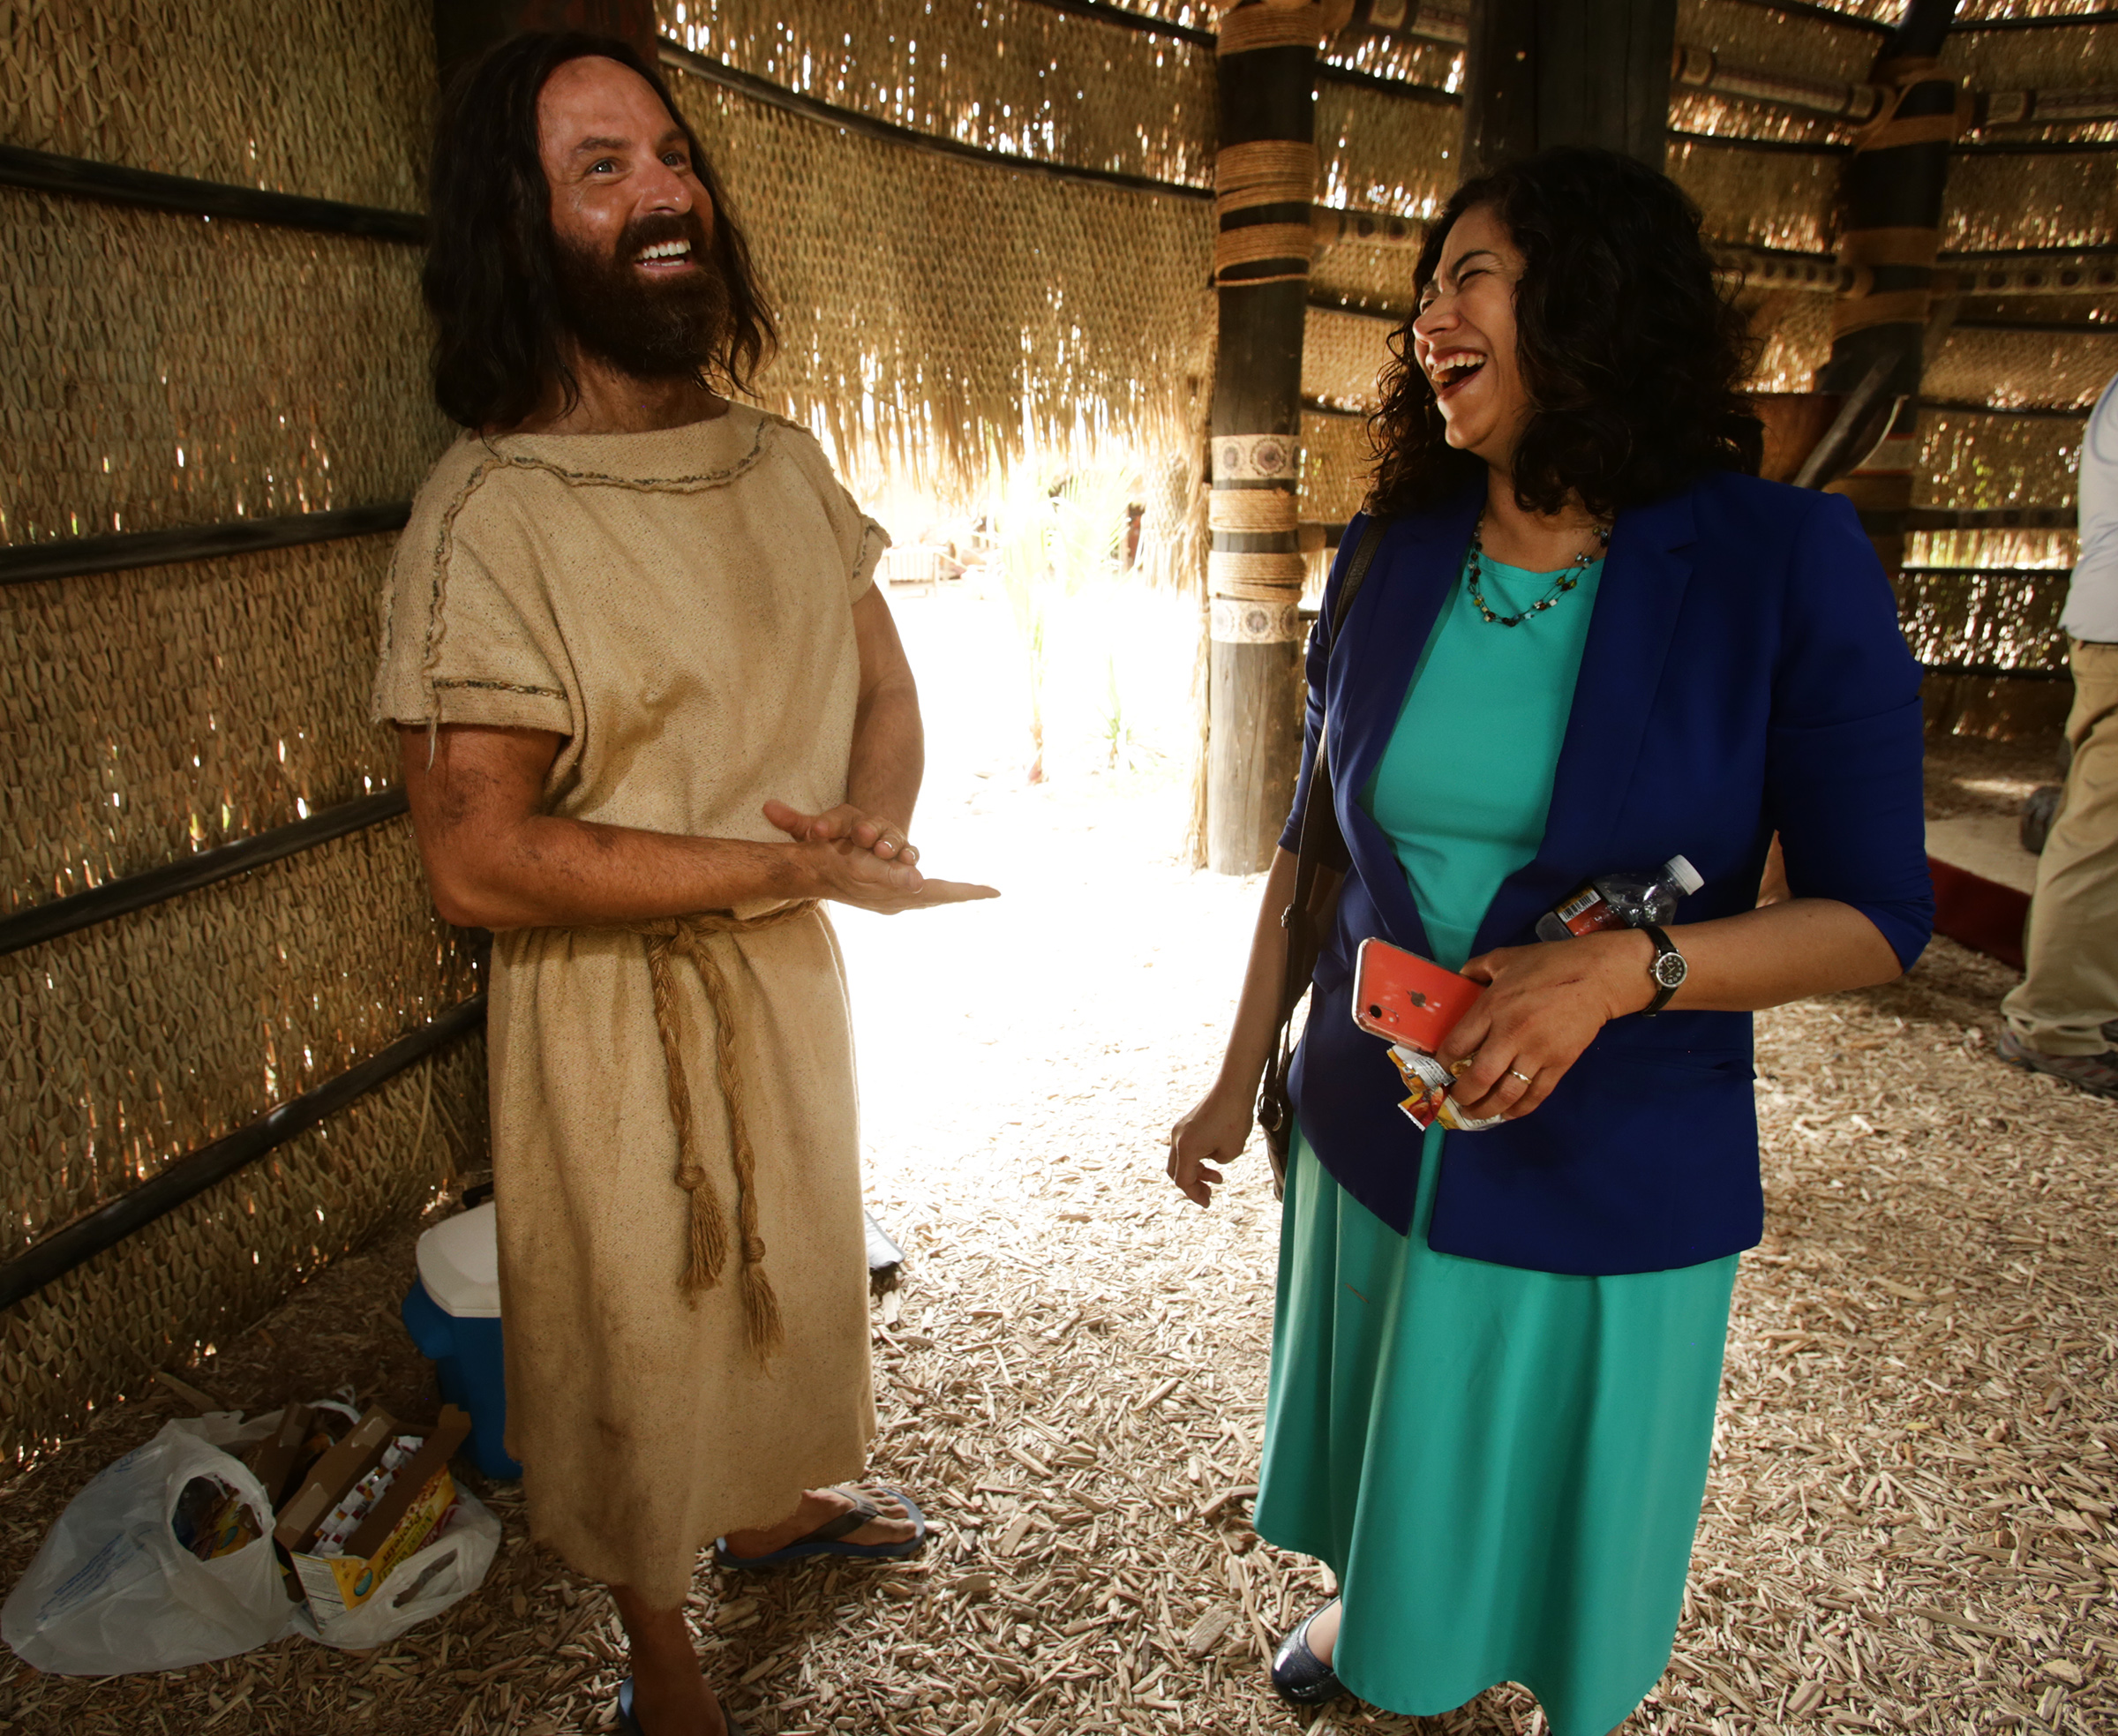 Ryan Wood, who plays the part of Abinadi talks with Sister Reyna I. Aburto second counselor in the general presidency of the Relief Society of The Church of Jesus Christ of Latter-day Saints as work on production of the Book of Mormon Videos Series continues in Provo at the LDS Motion Picture Studio on Tuesday, Sept. 3, 2019.